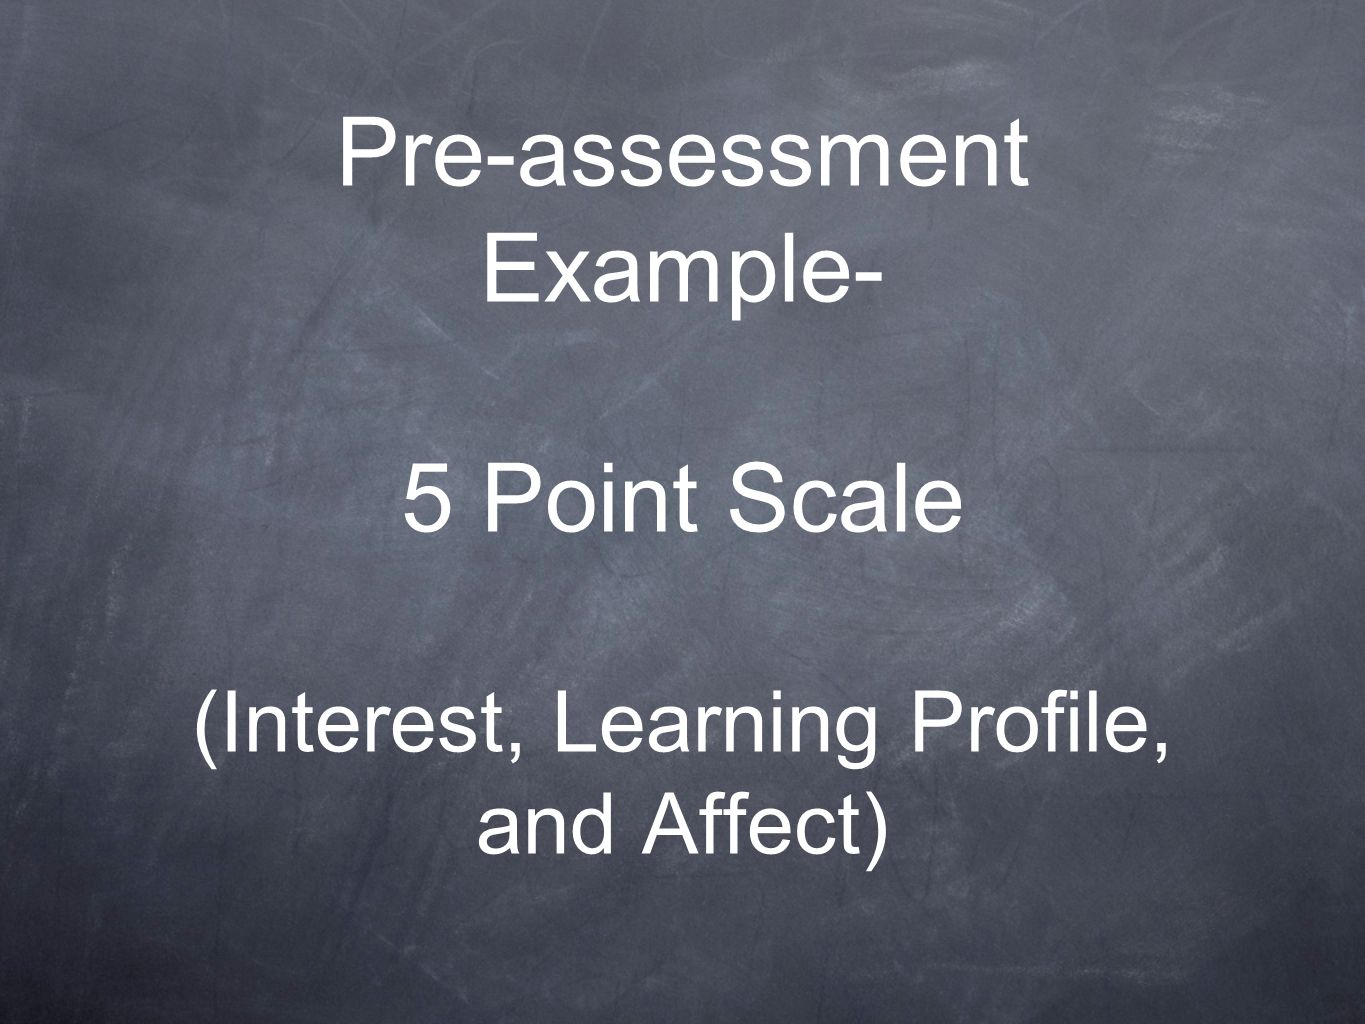 Pre-assessment Example- 5 Point Scale (Interest, Learning Profile, and Affect)